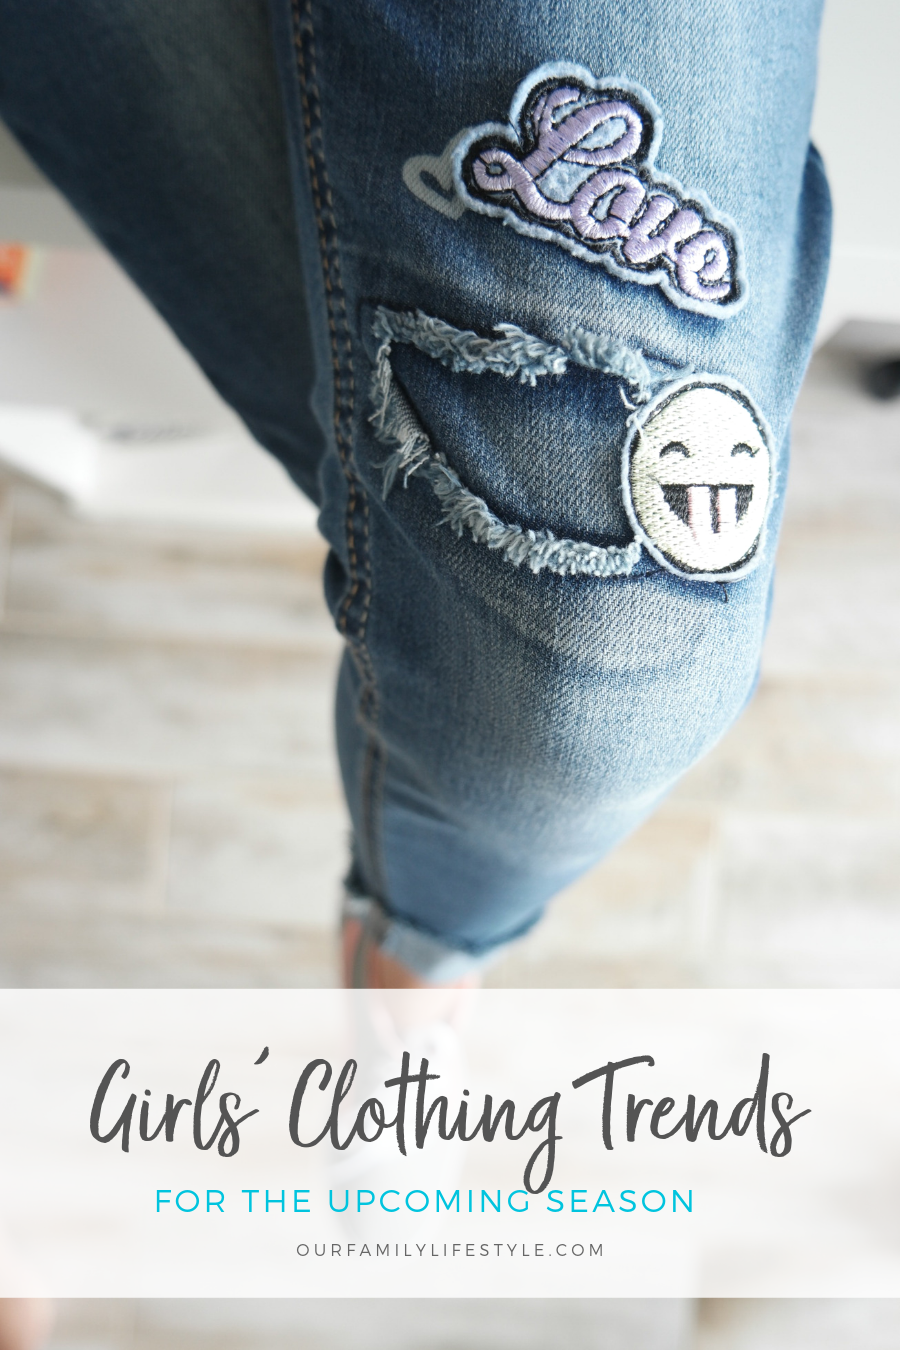 Girls' Clothing Trends For The Upcoming Season